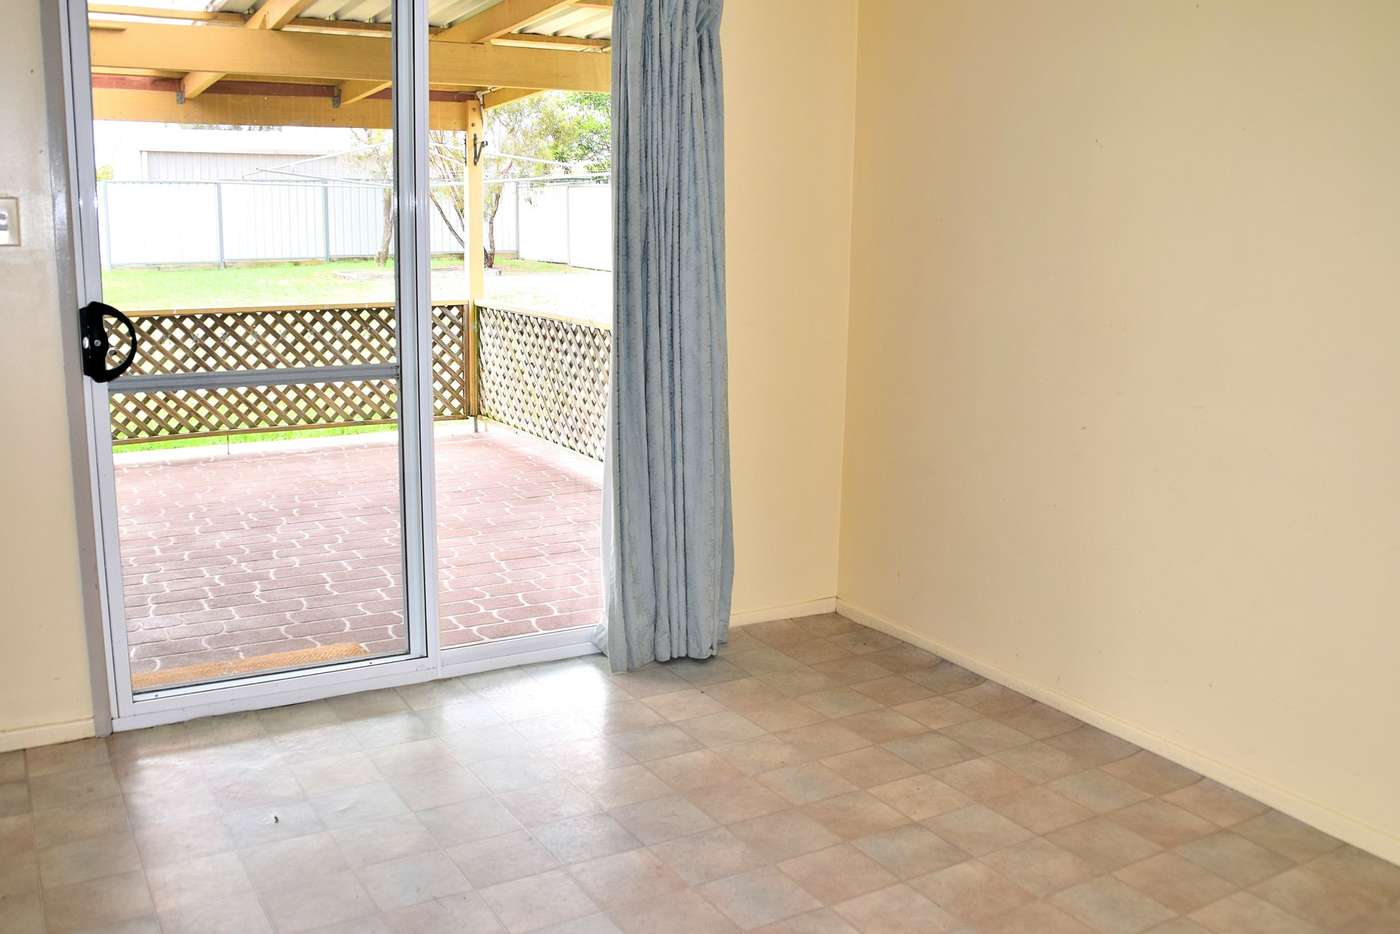 Seventh view of Homely house listing, 108 Wallace Street, Warwick QLD 4370